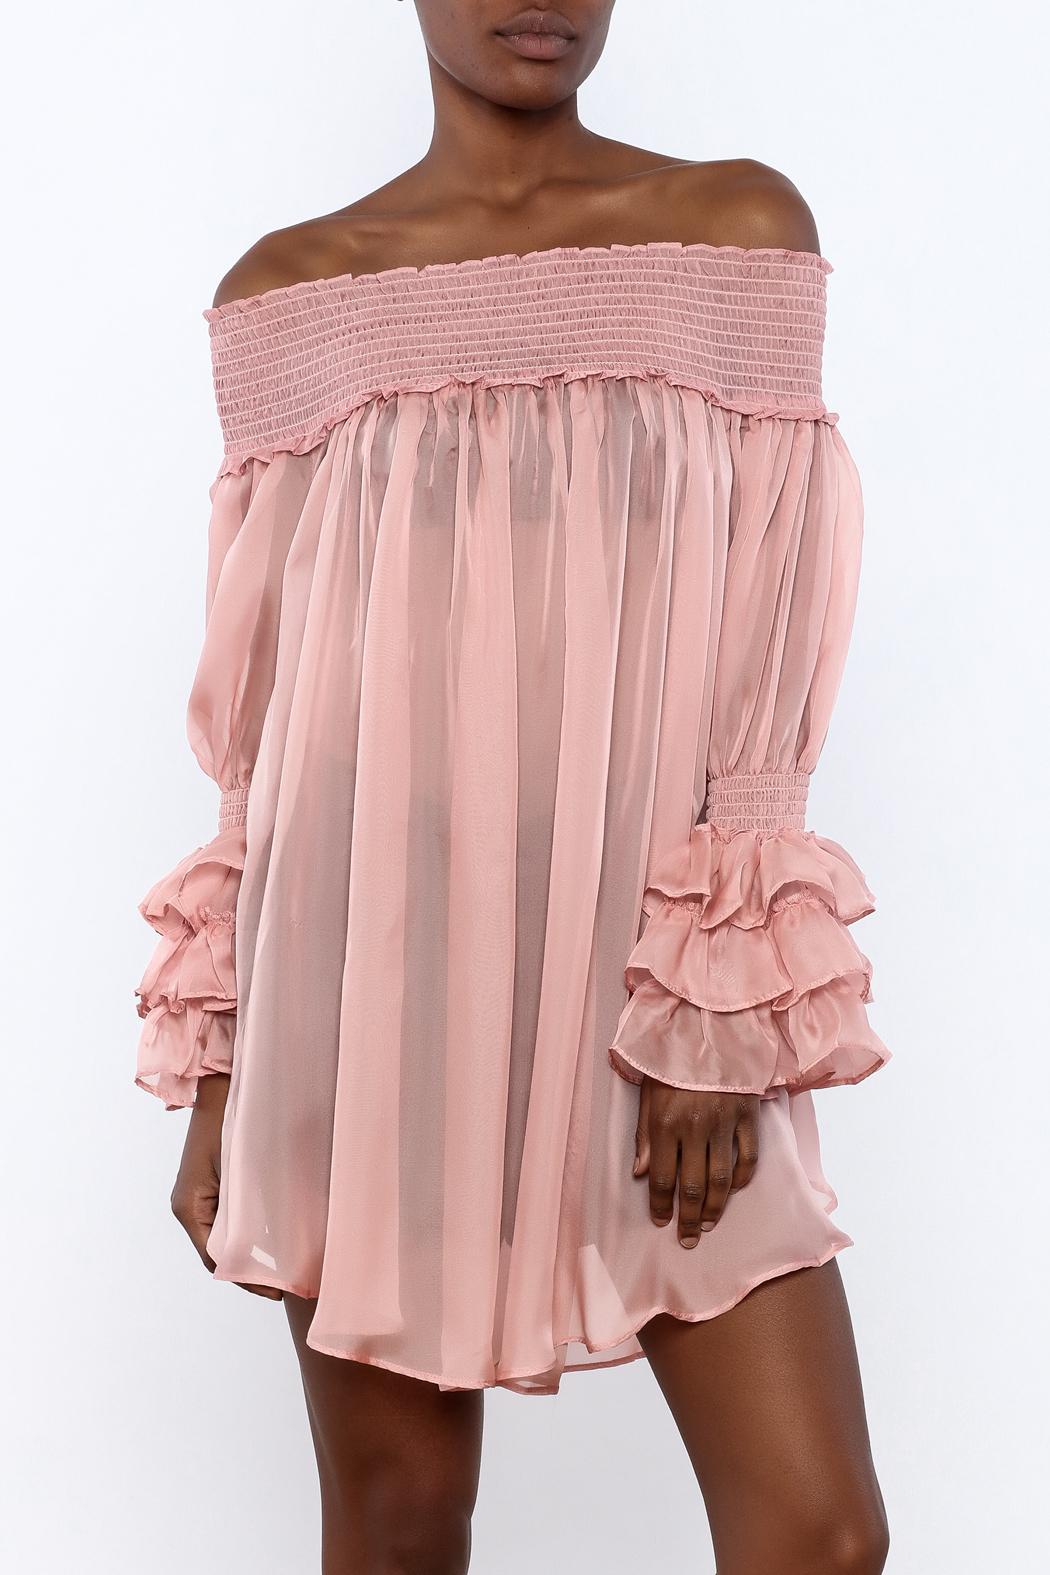 cq by cq Sheer Off Shoulder Top - Front Cropped Image